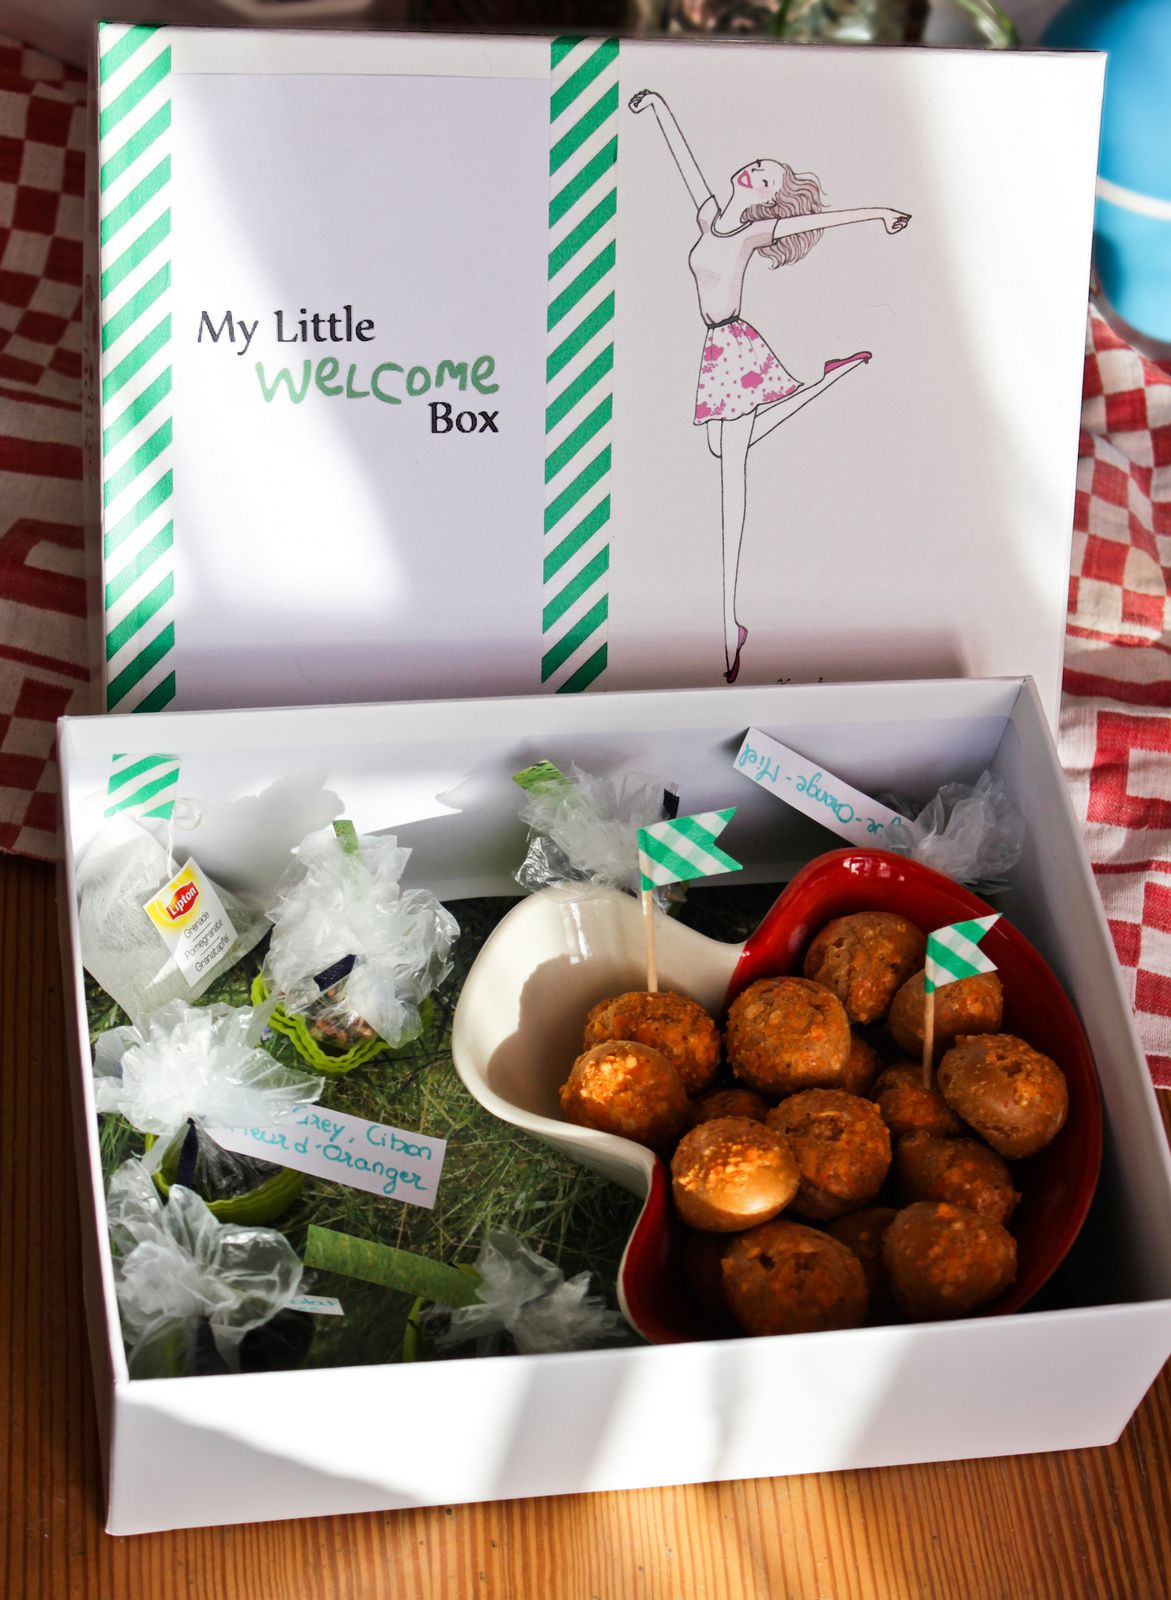 My Little Welcome Box